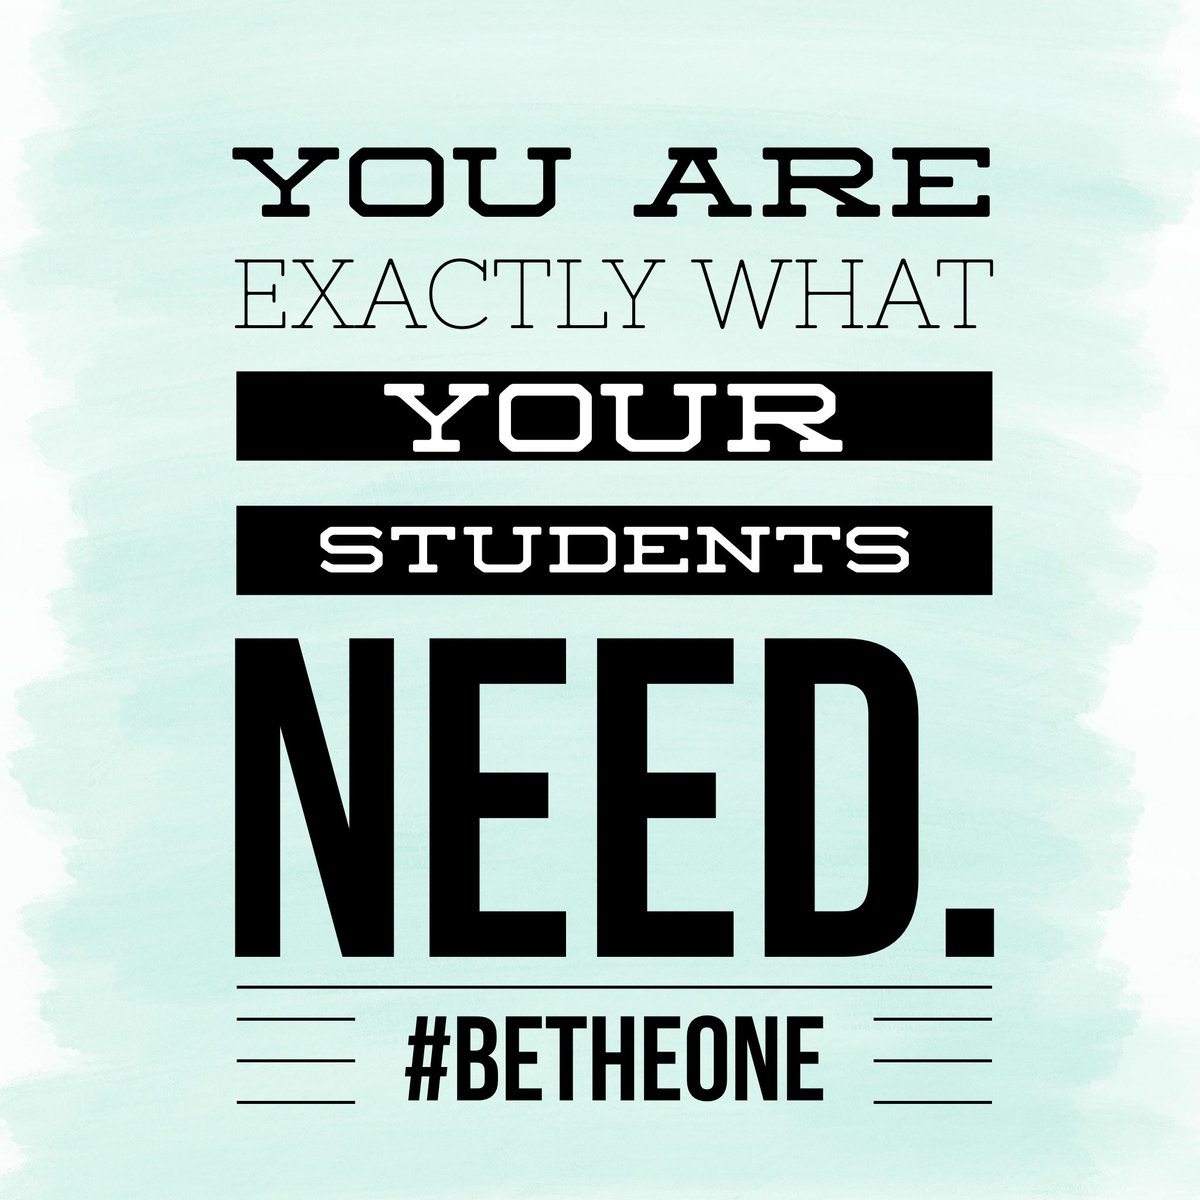 We all need to be reminded of this sometimes. Be the light that shows your students the way. #BeTheOne